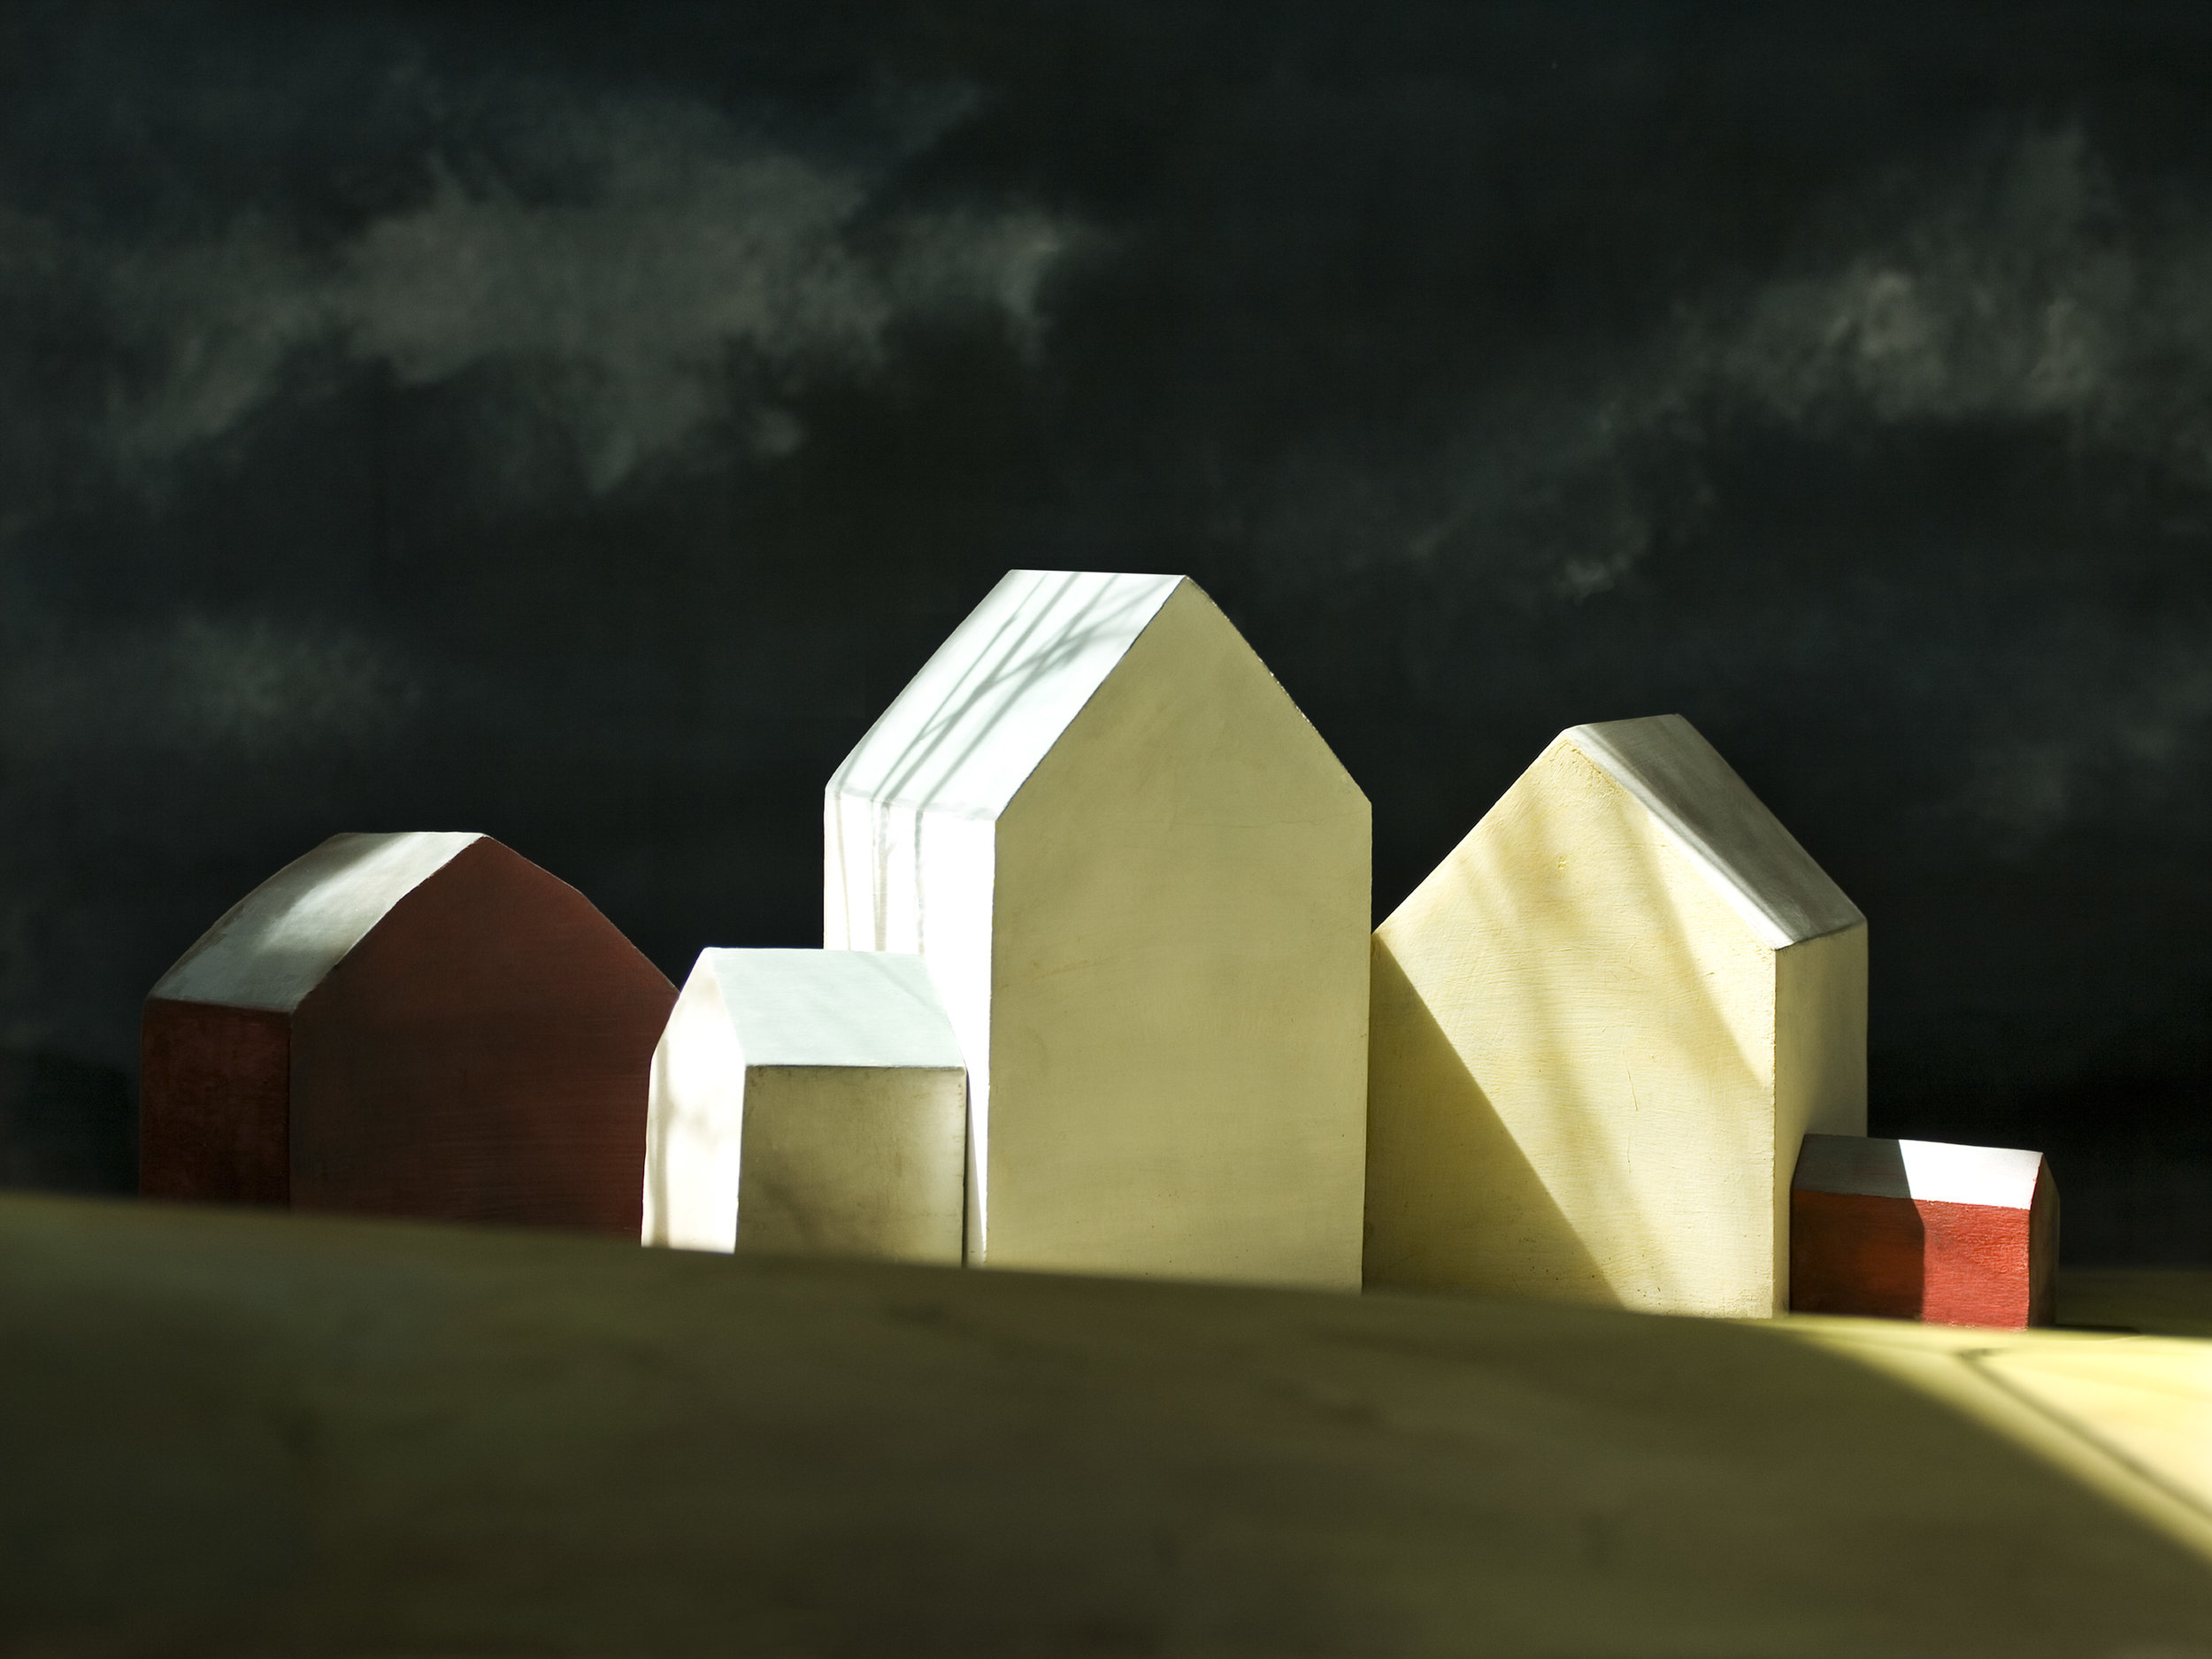 Moonlit Property, 2010, digital photograph, 31 x 39 in, edition of 10, 8 available, $3,200